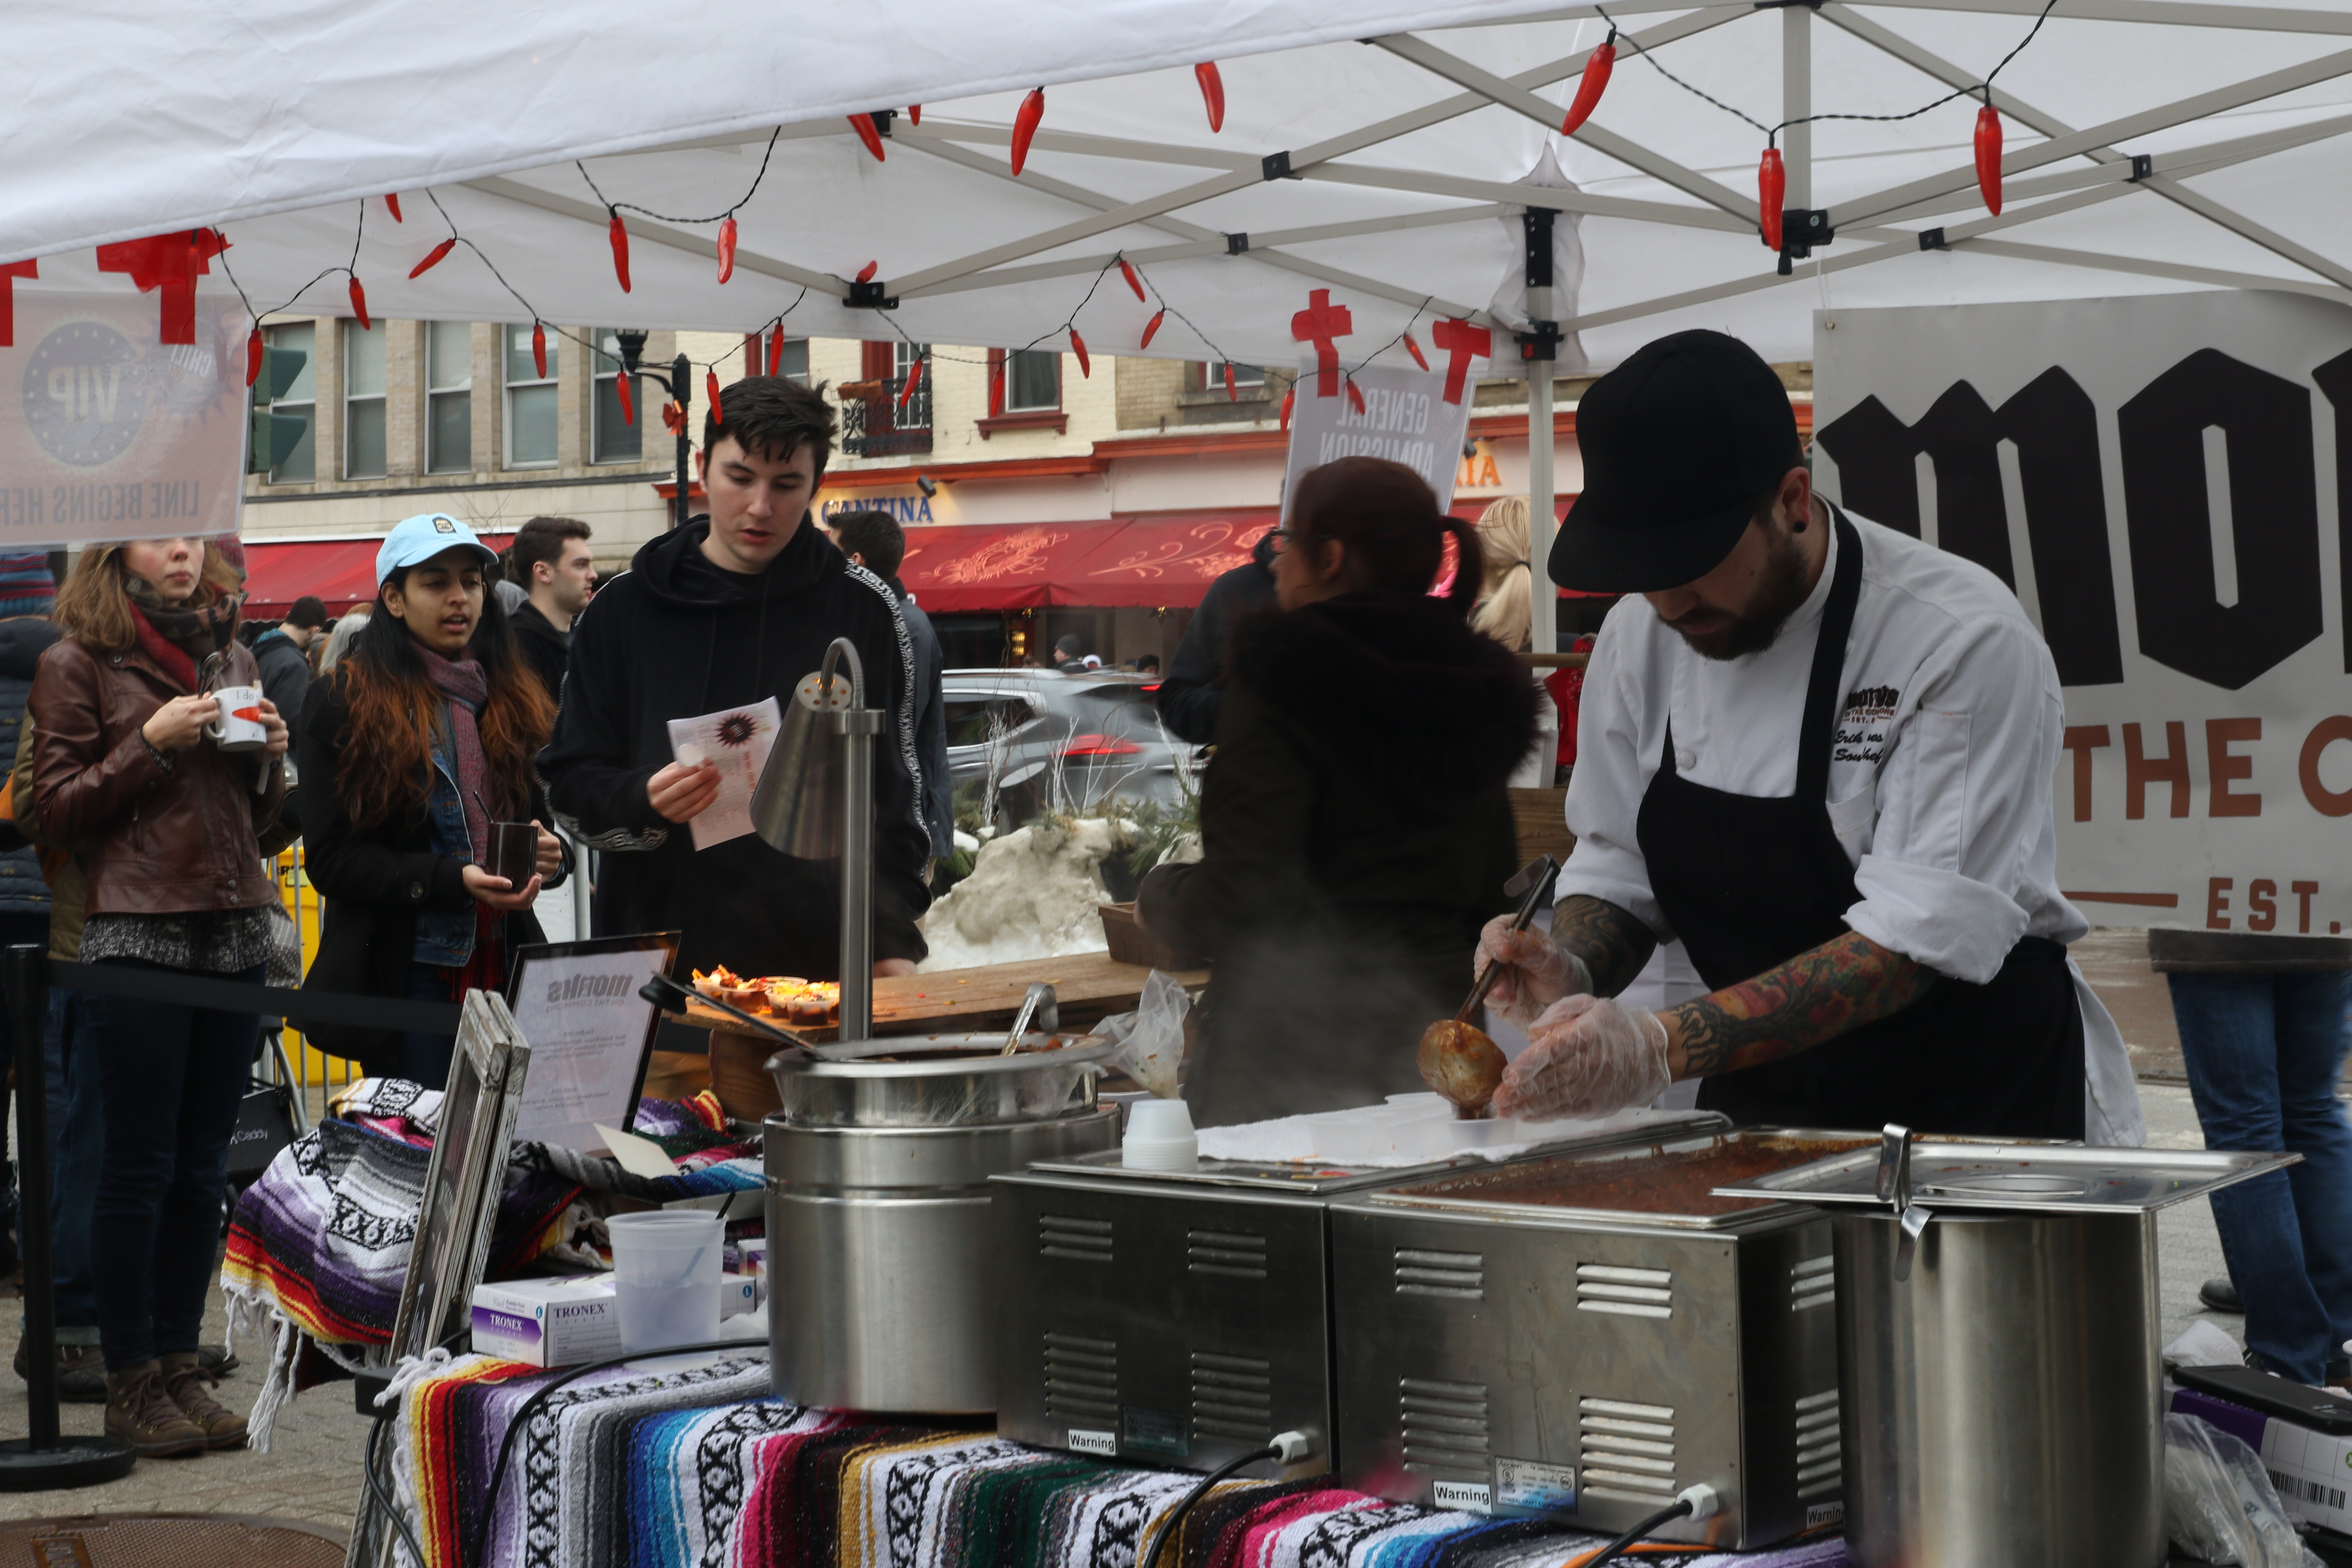 WATCH: Ithaca community celebrates 20th annual Chili Cook-Off